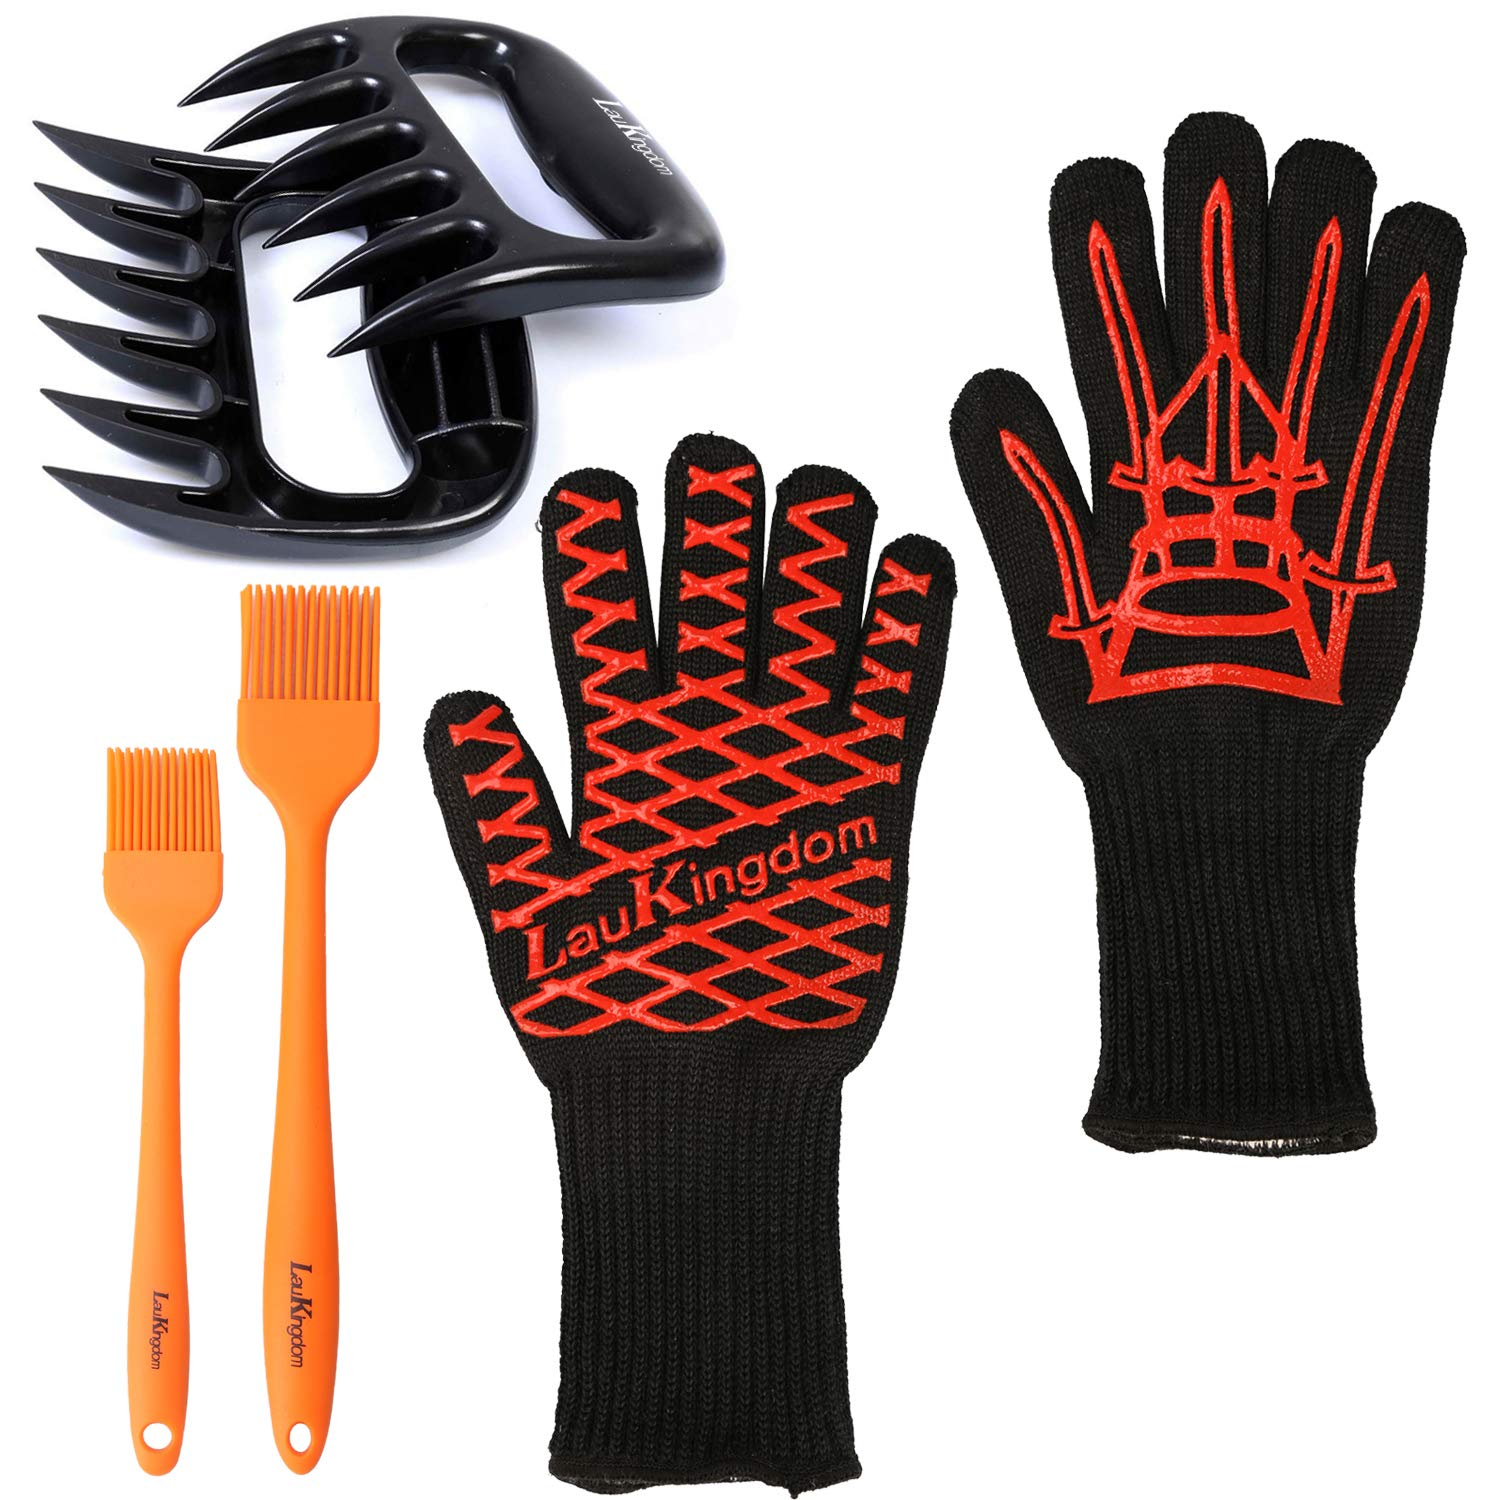 BBQ Cooking Tool Set Grilling Accessories Includes Silicone Extreme Heat Resistant Gloves, Meat Claws Plus Non-Slip Basting Brushes for Your Indoor and Outdoor Needs for Grilling, Baking and Barbecue LauKingdom